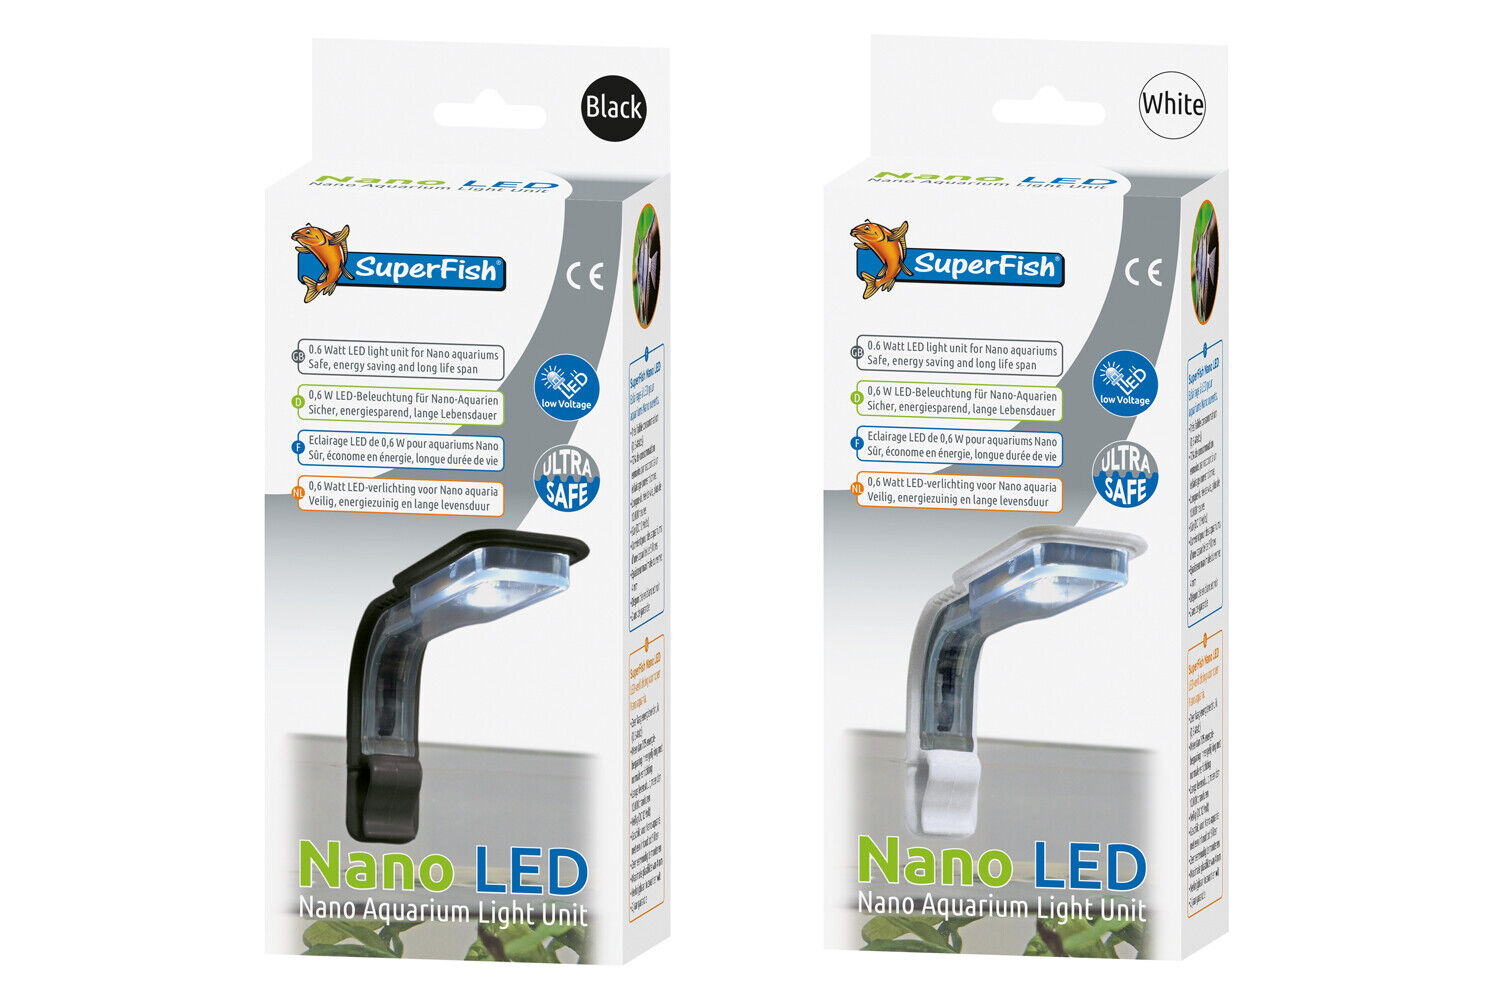 Led Licht Für Nano Aquarium White Superfish Nano Led Aquarium Tank Light Unit